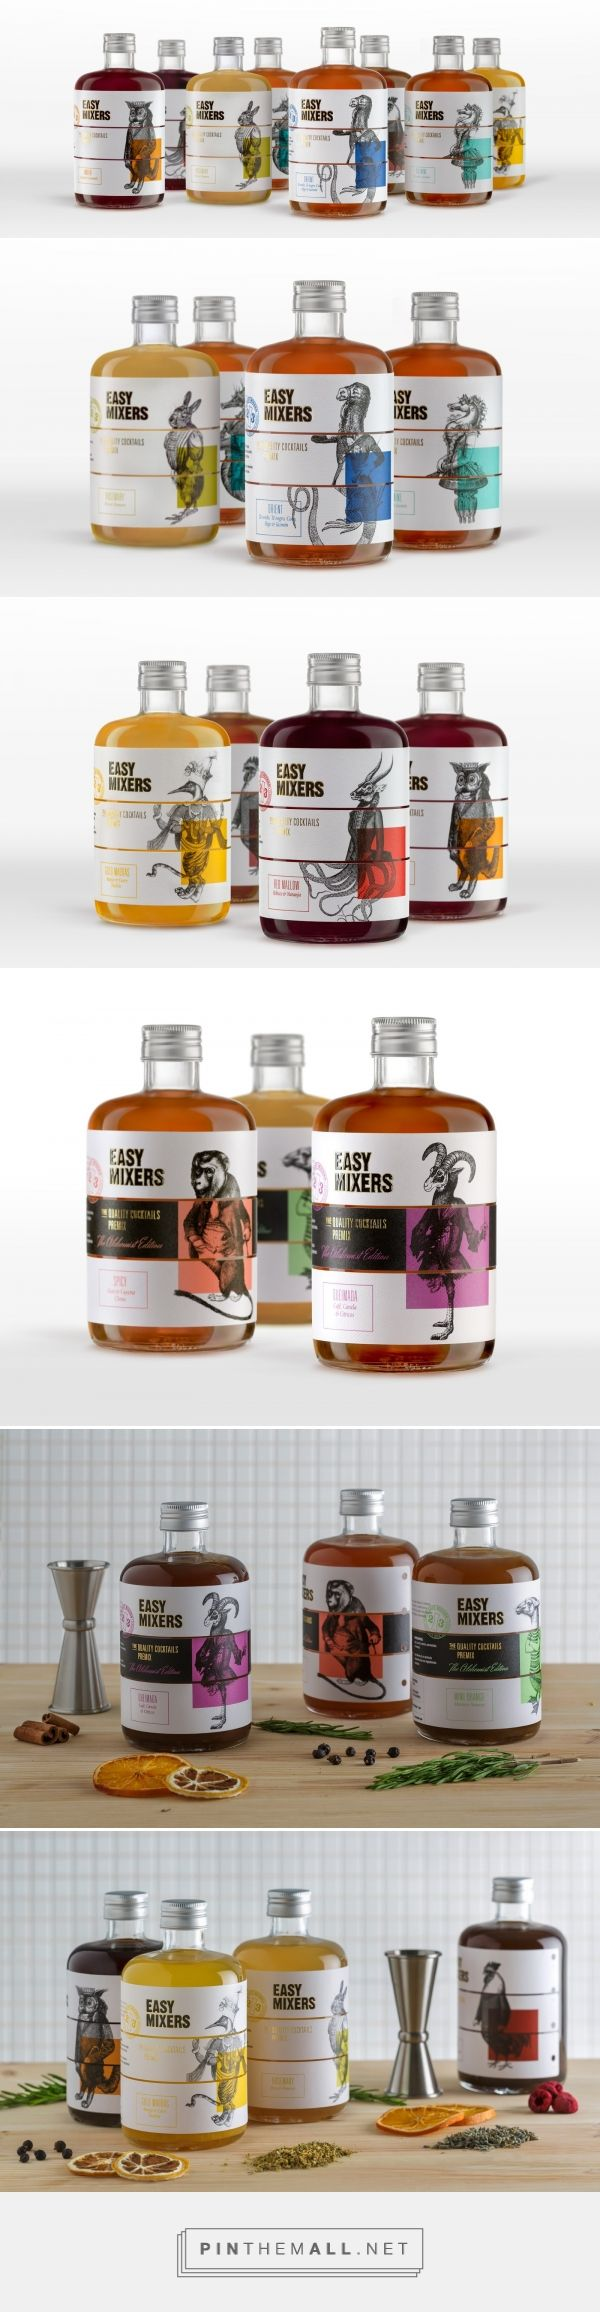 Easy-Mixers cocktail premix packaging design by TSMGO The Show Must Go On - Brand Consultants - http://www.packagingoftheworld.com/2017/06/easy-mixers.html